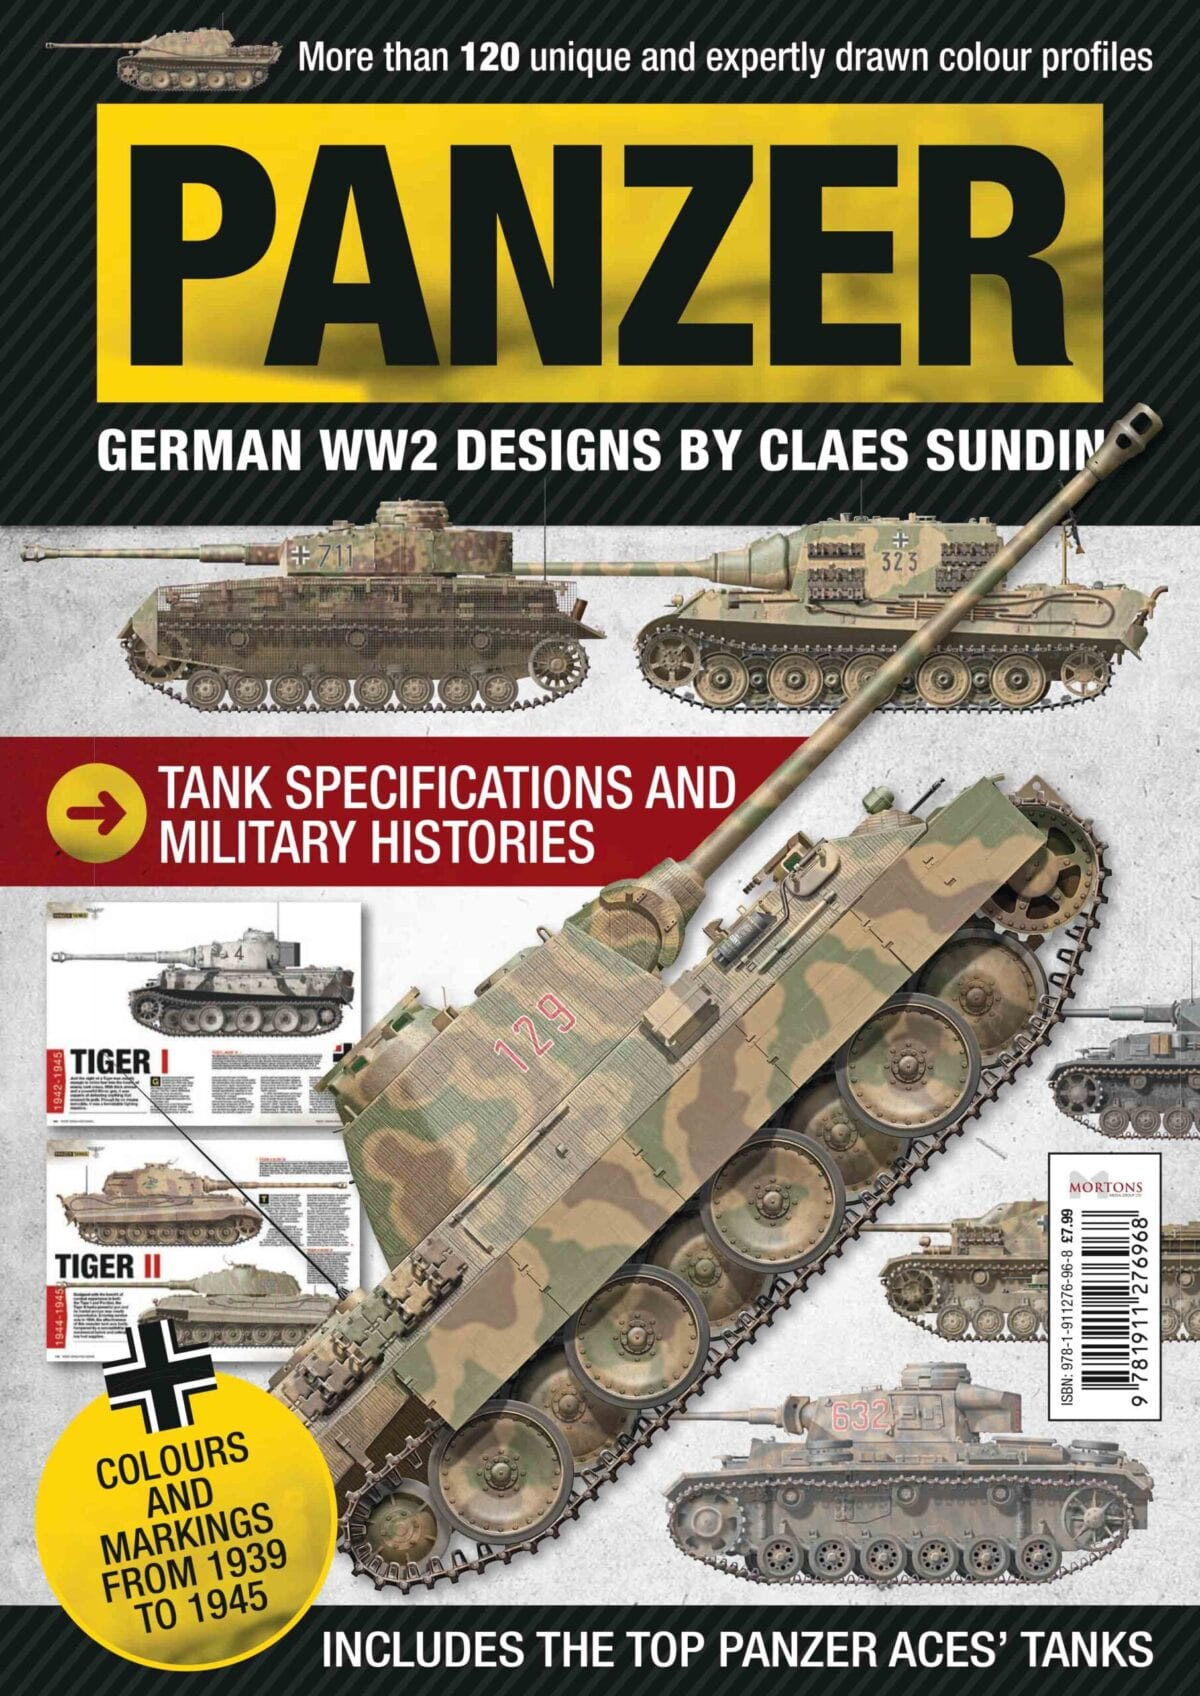 Panzer: German WW2 Designs